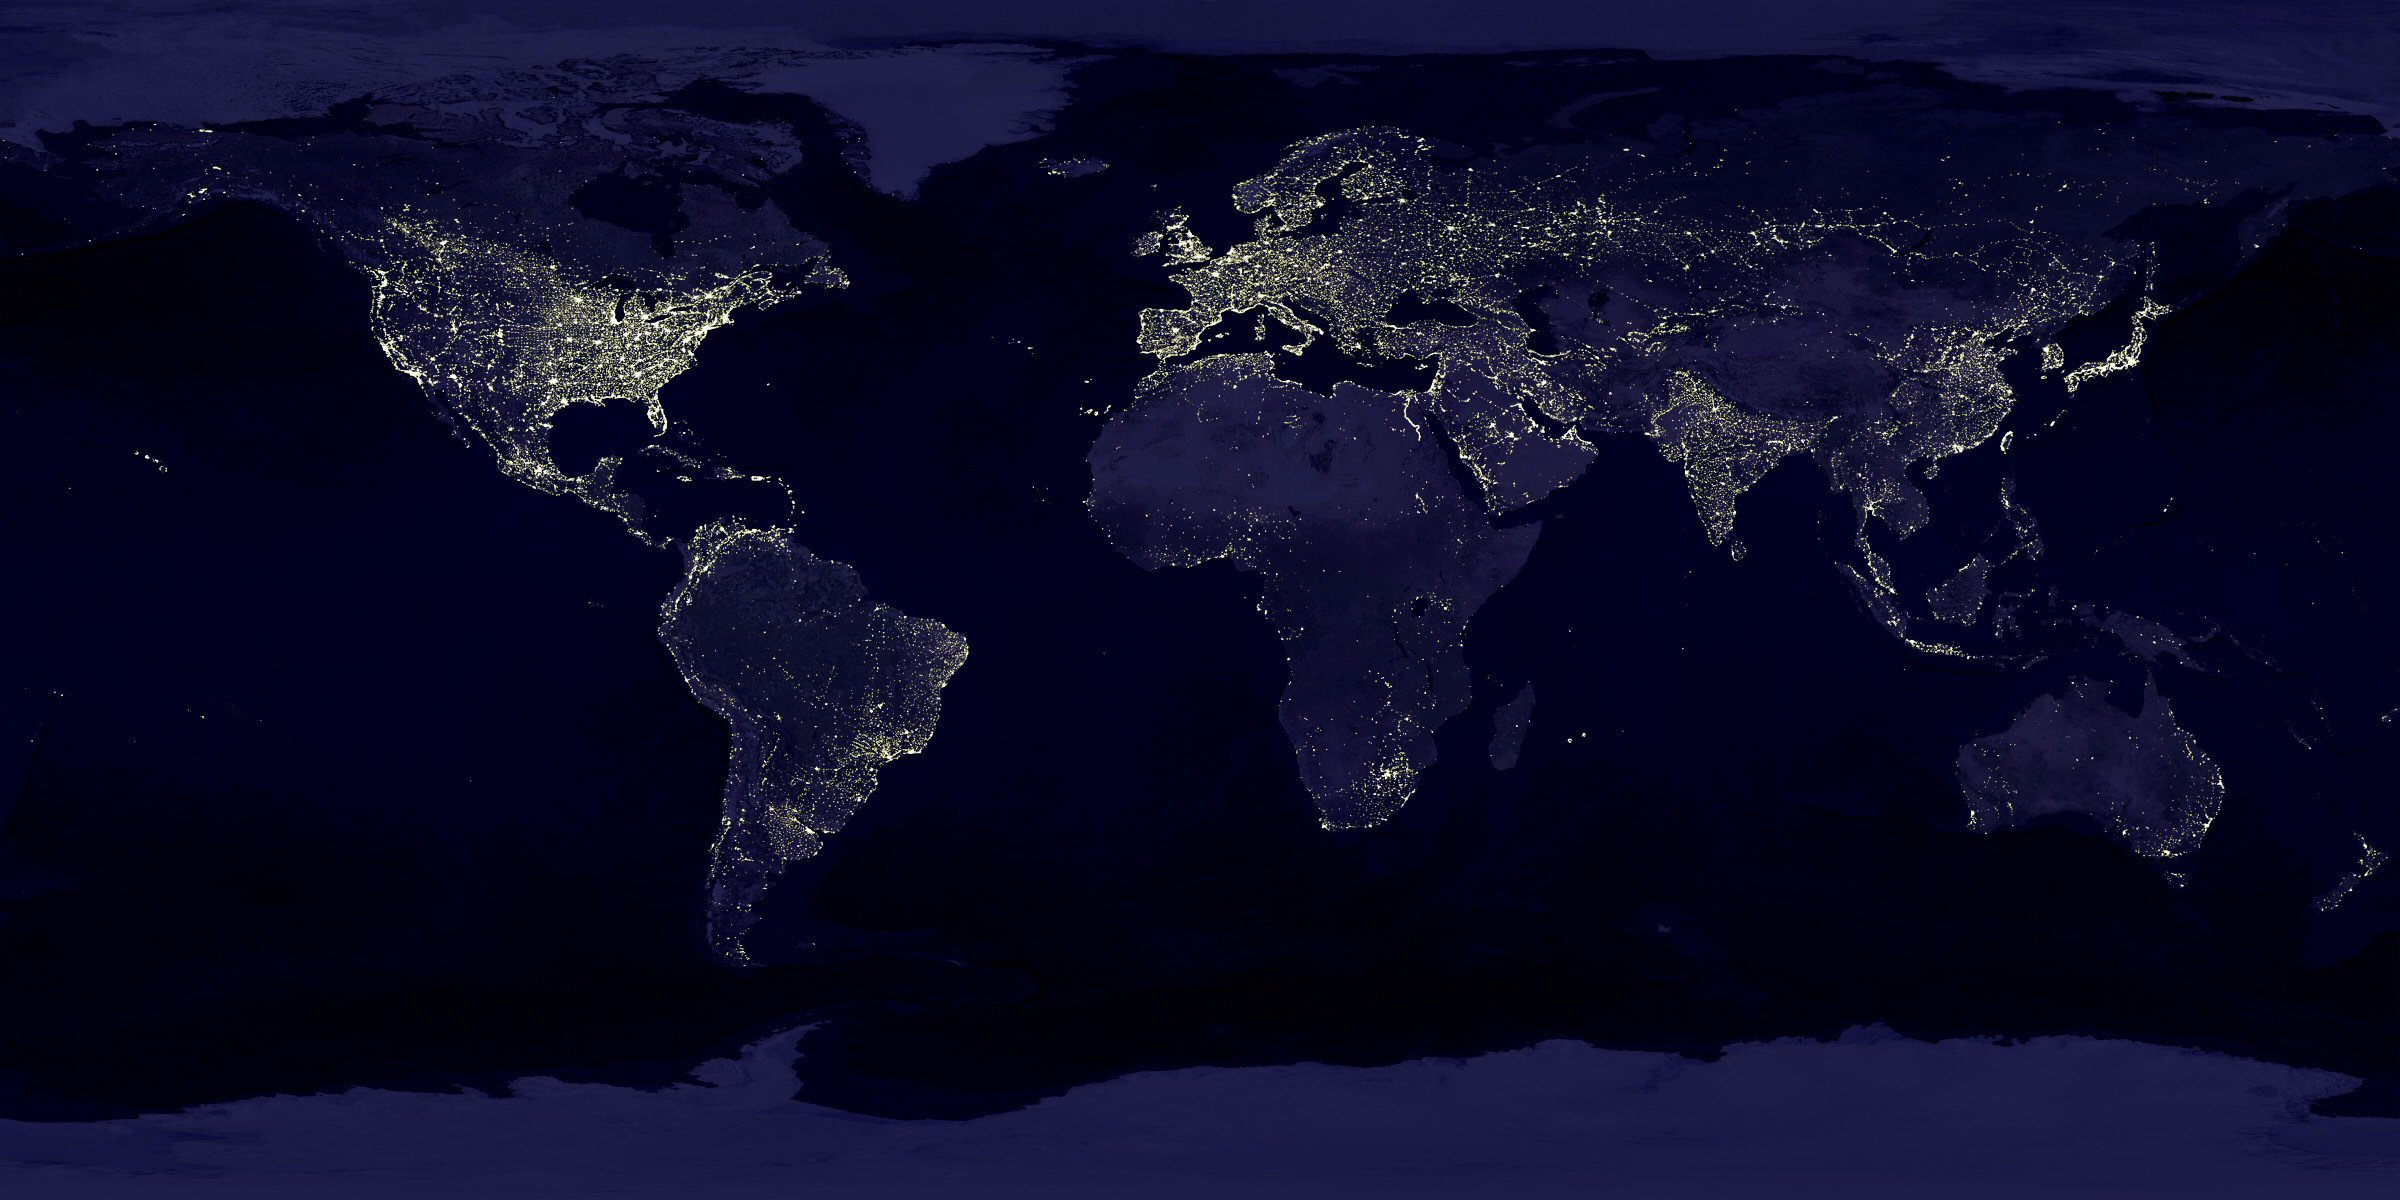 x 11 from space nasa earth at night - photo #3